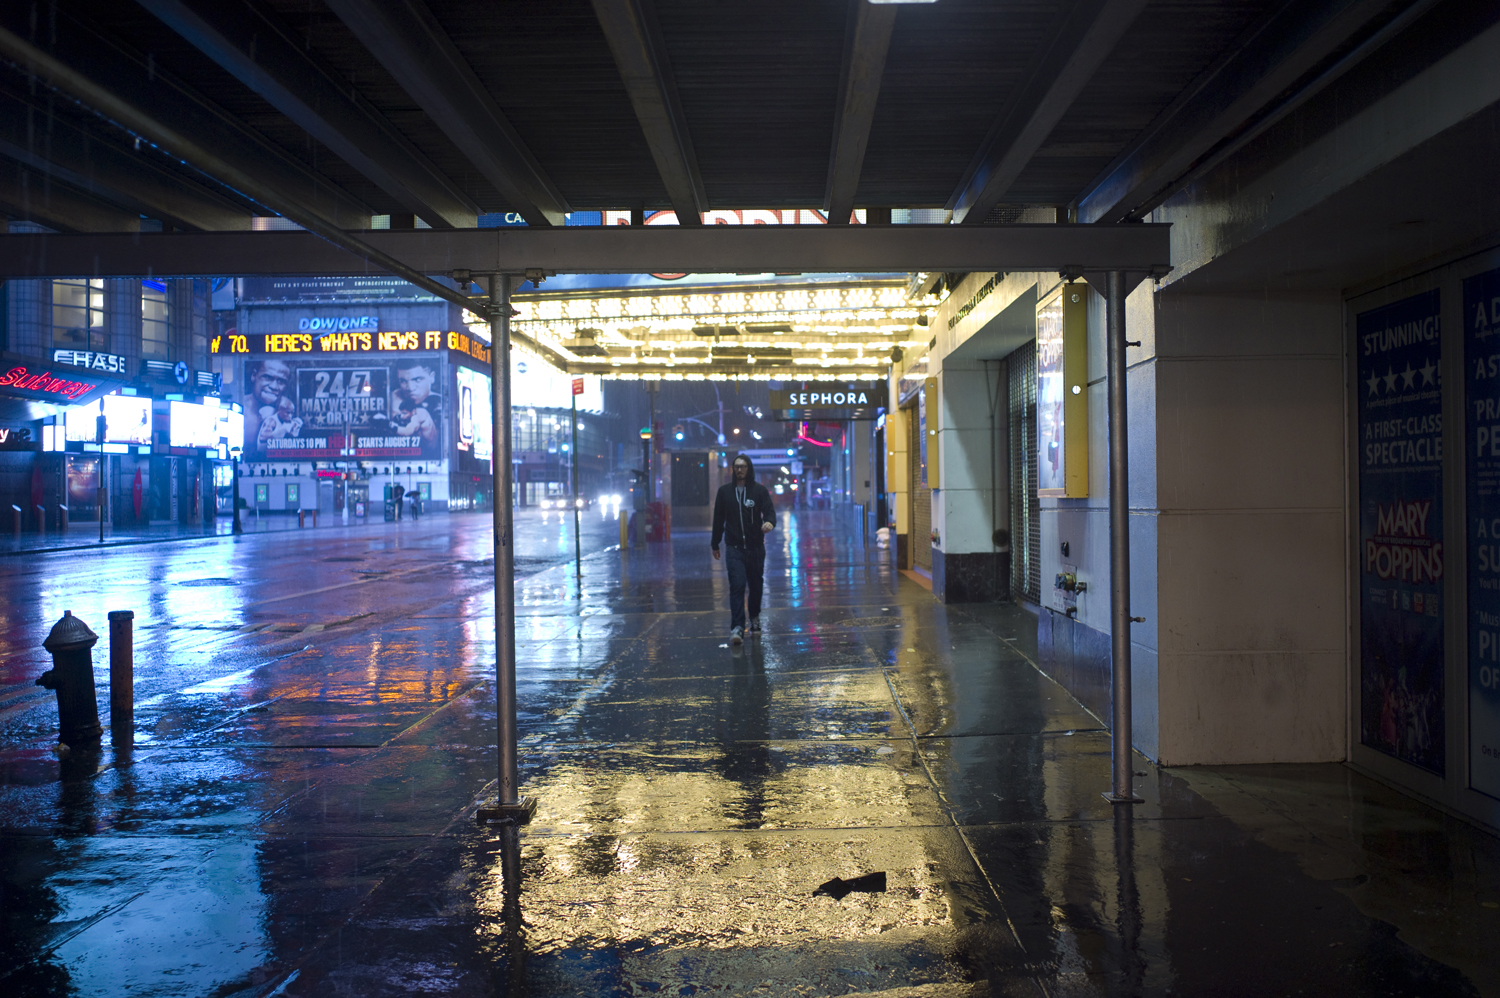 August 27, 2011, New York, NY. A lone man walks through an empty part of Times Square late in the evening during the storm.